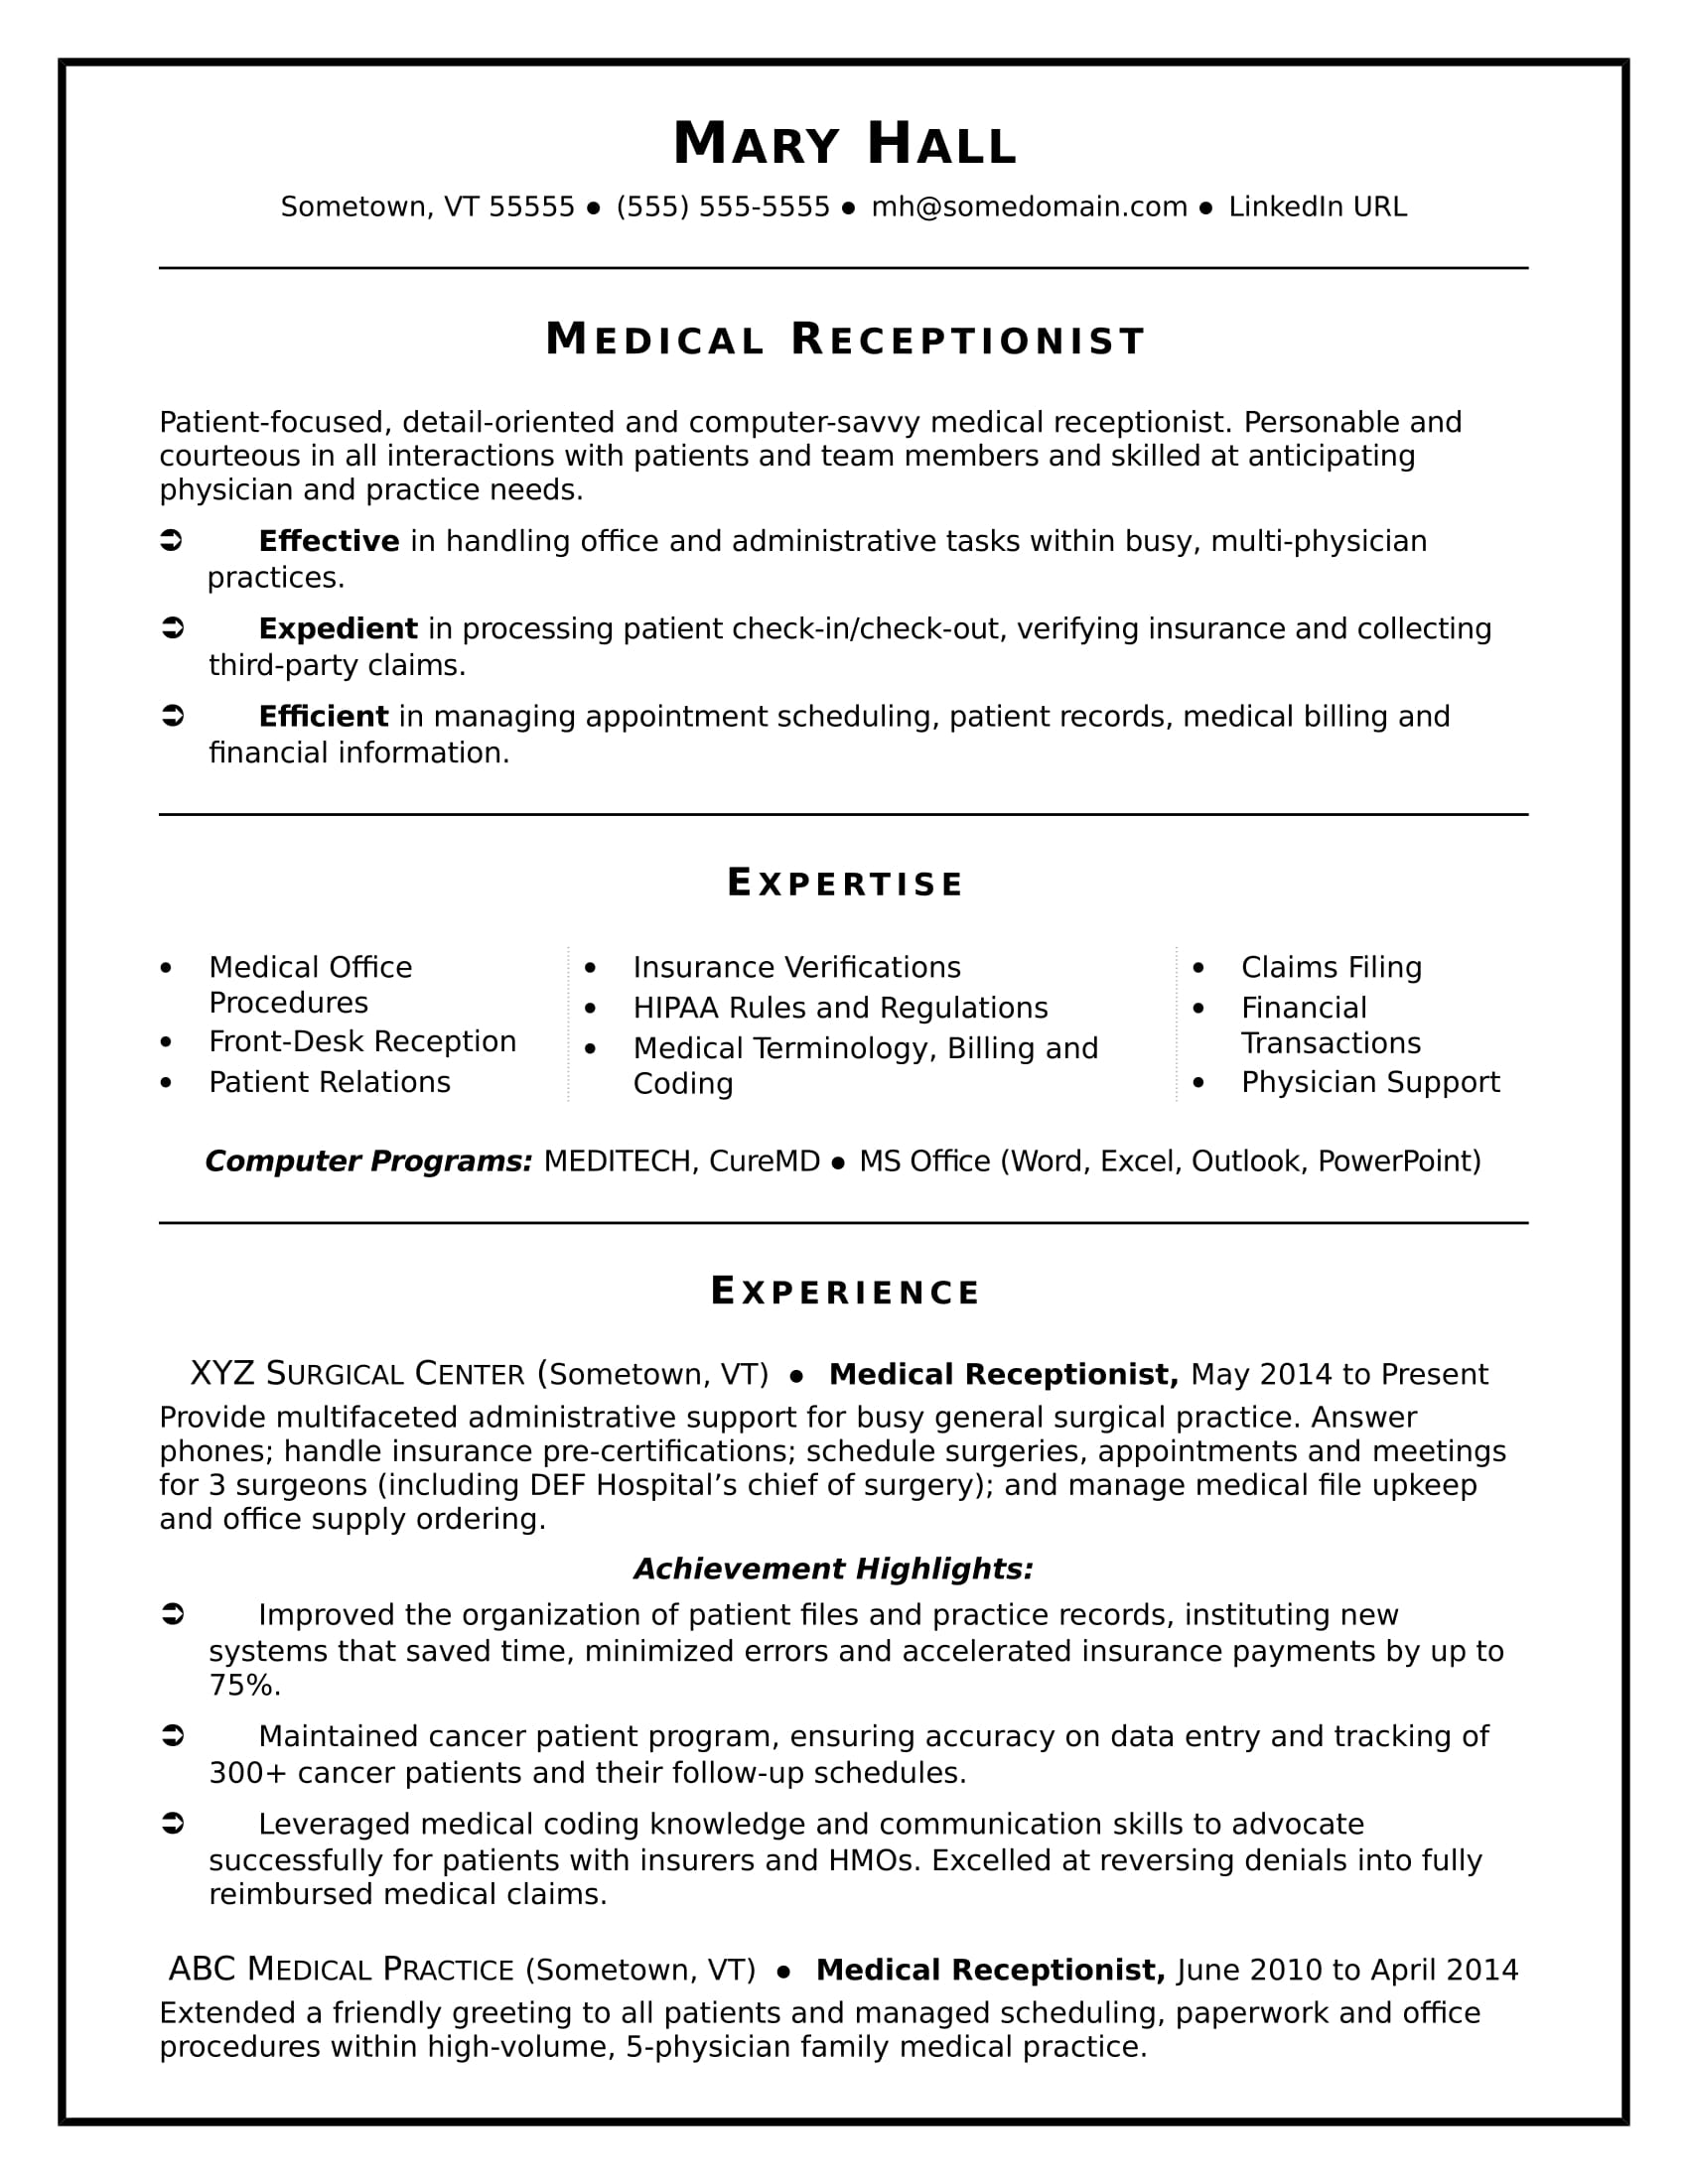 medical receptionist resume sample - Medical Biller Resume Sample